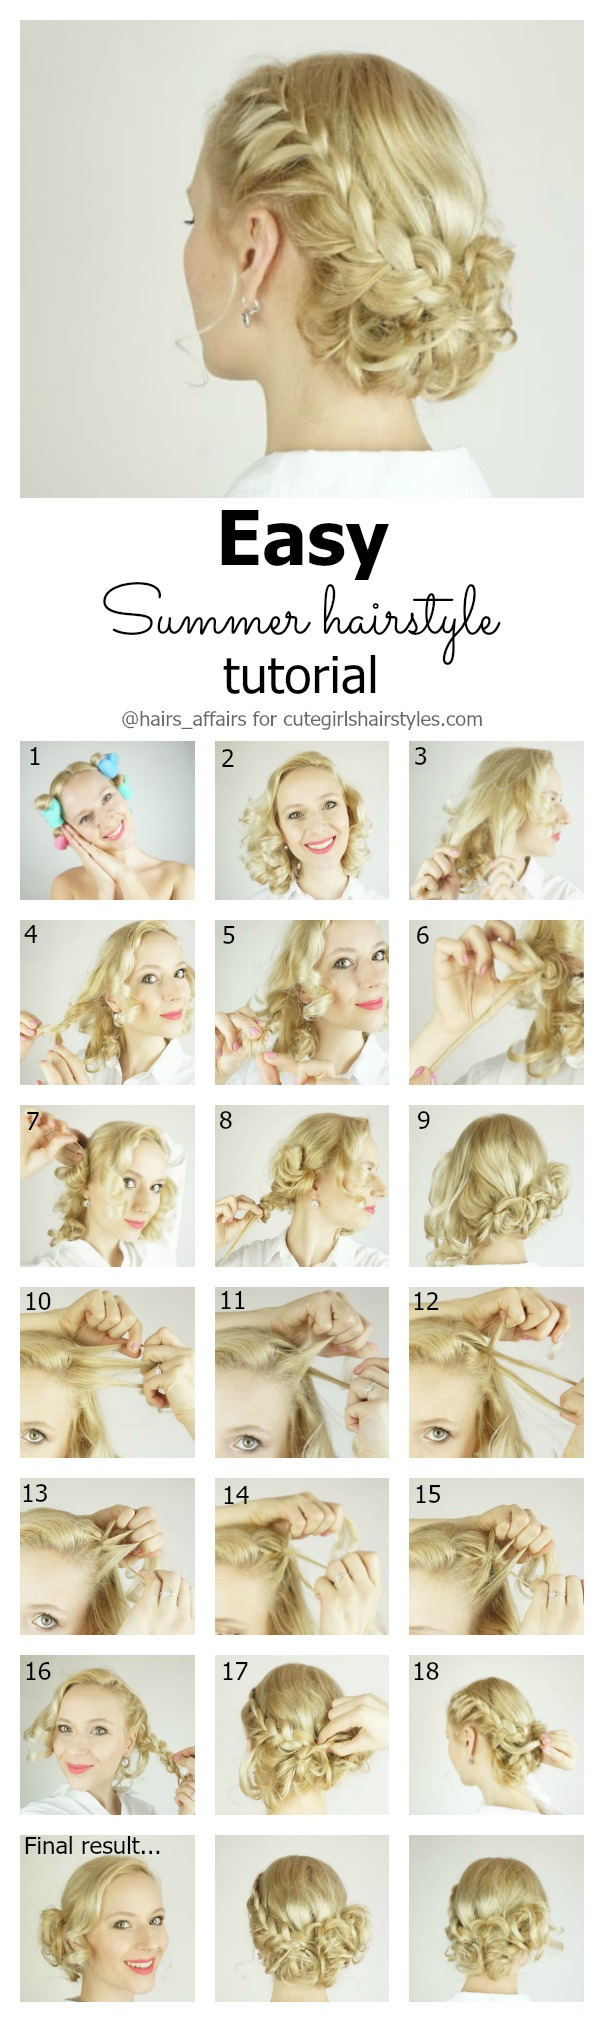 Summer Hairstyle Tutorial Summer Haircare Tips Cute Girls Hairstyles